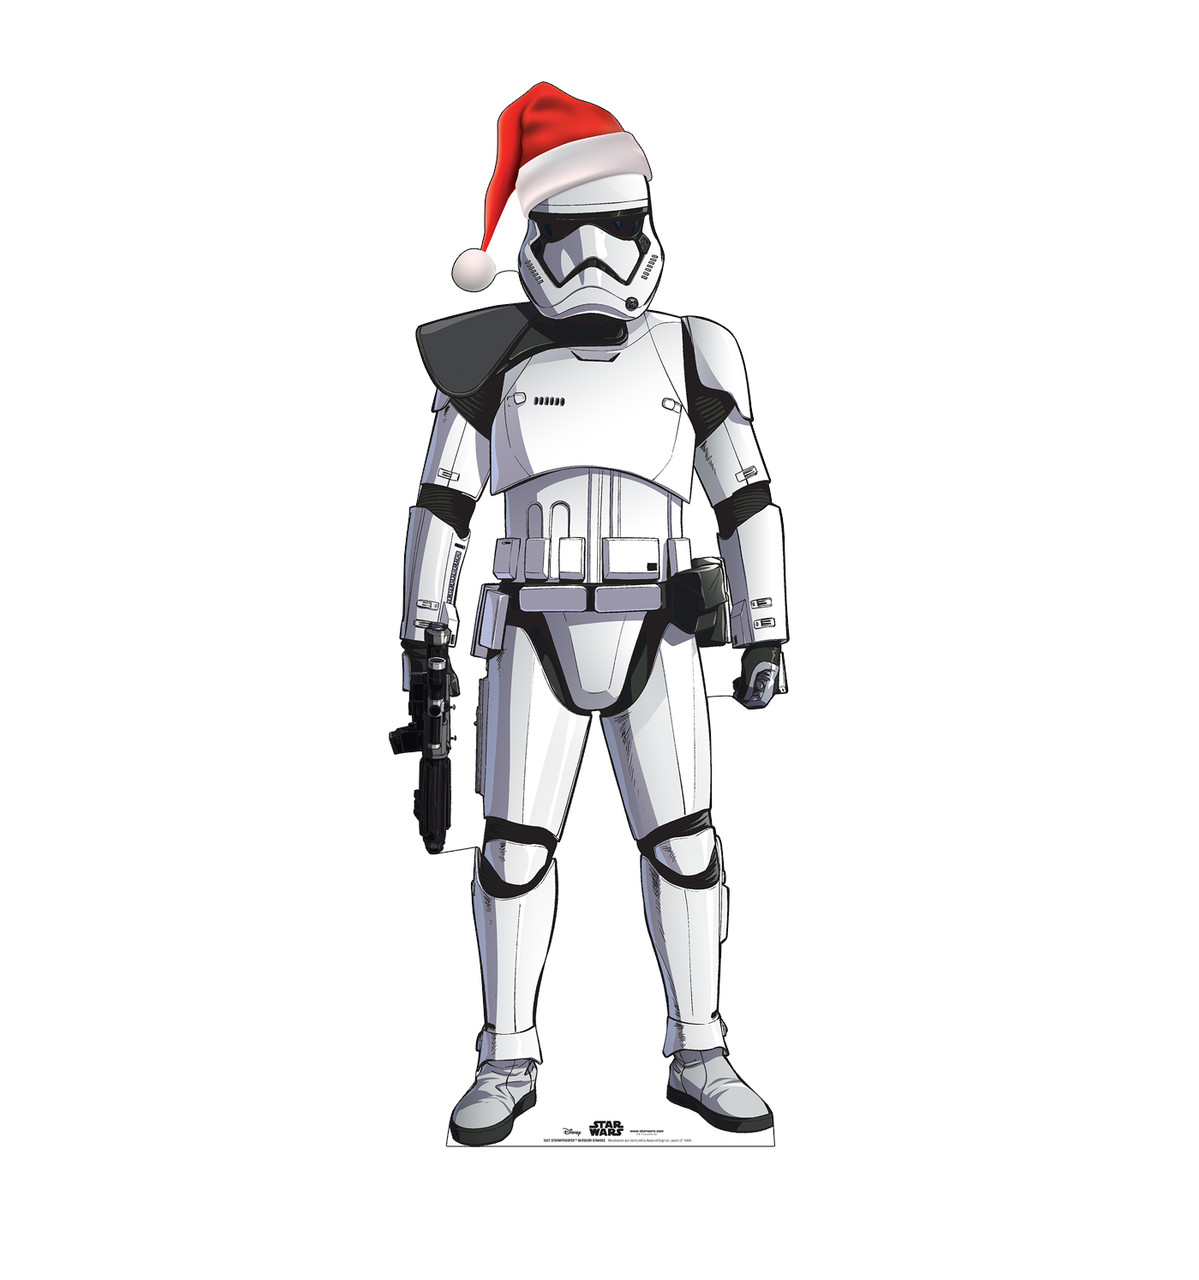 Coroplast outdoor standee of Stormtrooper with holiday hat.